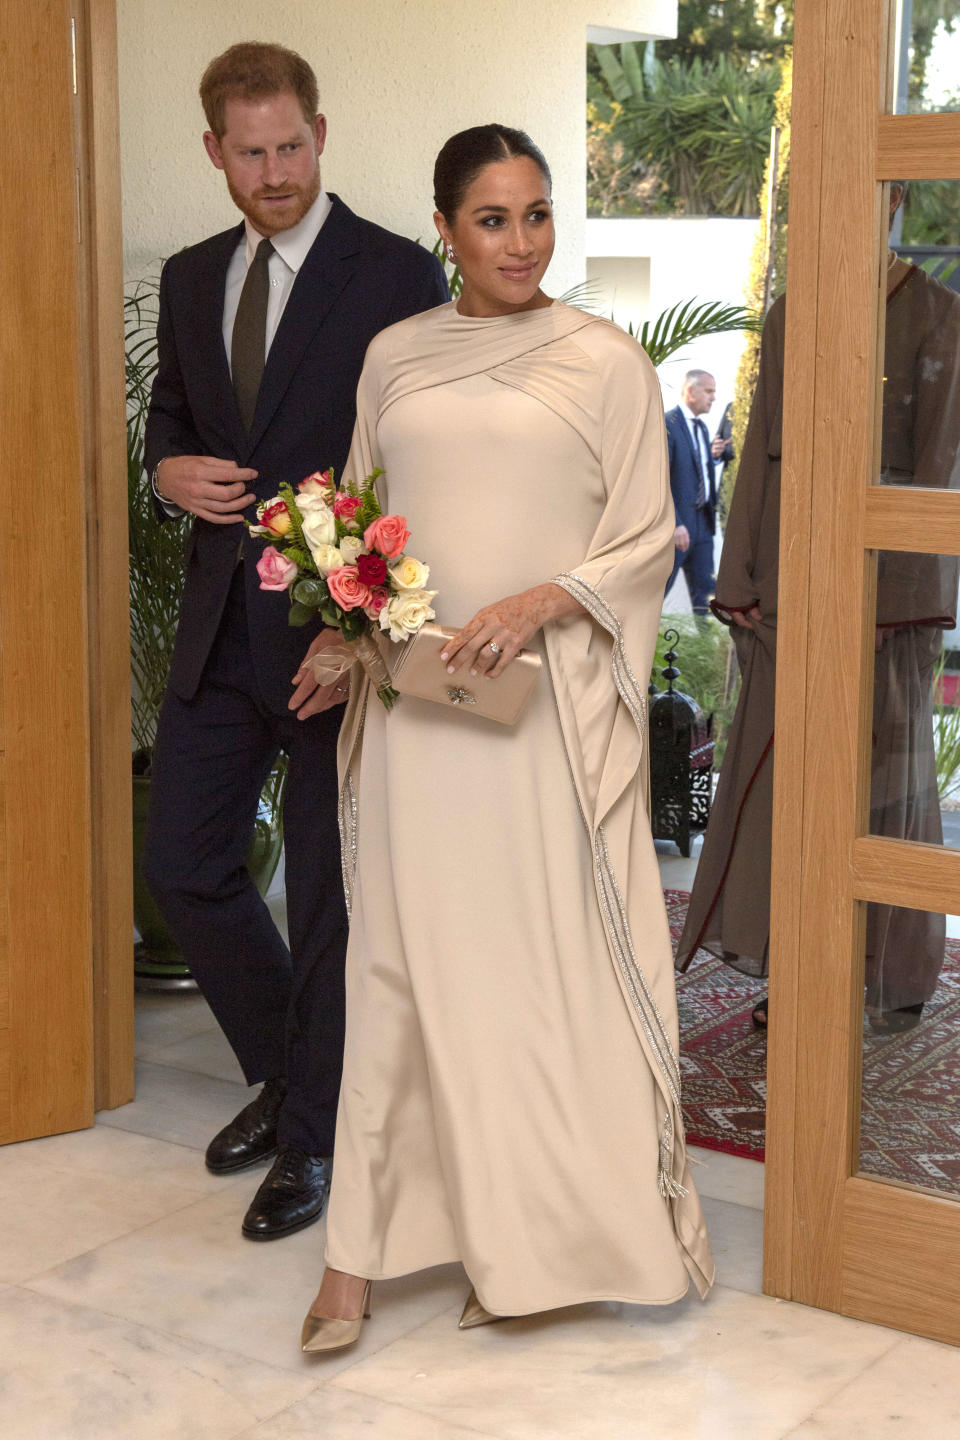 """<p>For the evening reception at the British residence in Rabat, Meghan wore a bespoke Dior gown with a draped neckline and beaded sleeves, with a gold clutch from the French fashion house and metallic court shoes. She wore her hair in a sleek bun and finished her look with her statement <a rel=""""nofollow noopener"""" href=""""https://www.maisonbirks.com/en/birks-snowflake-snowstorm-diamond-earrings-in-white-gold"""" target=""""_blank"""" data-ylk=""""slk:Birks Snowstorm earrings"""" class=""""link rapid-noclick-resp"""">Birks Snowstorm earrings</a>. [Photo: Getty] </p>"""